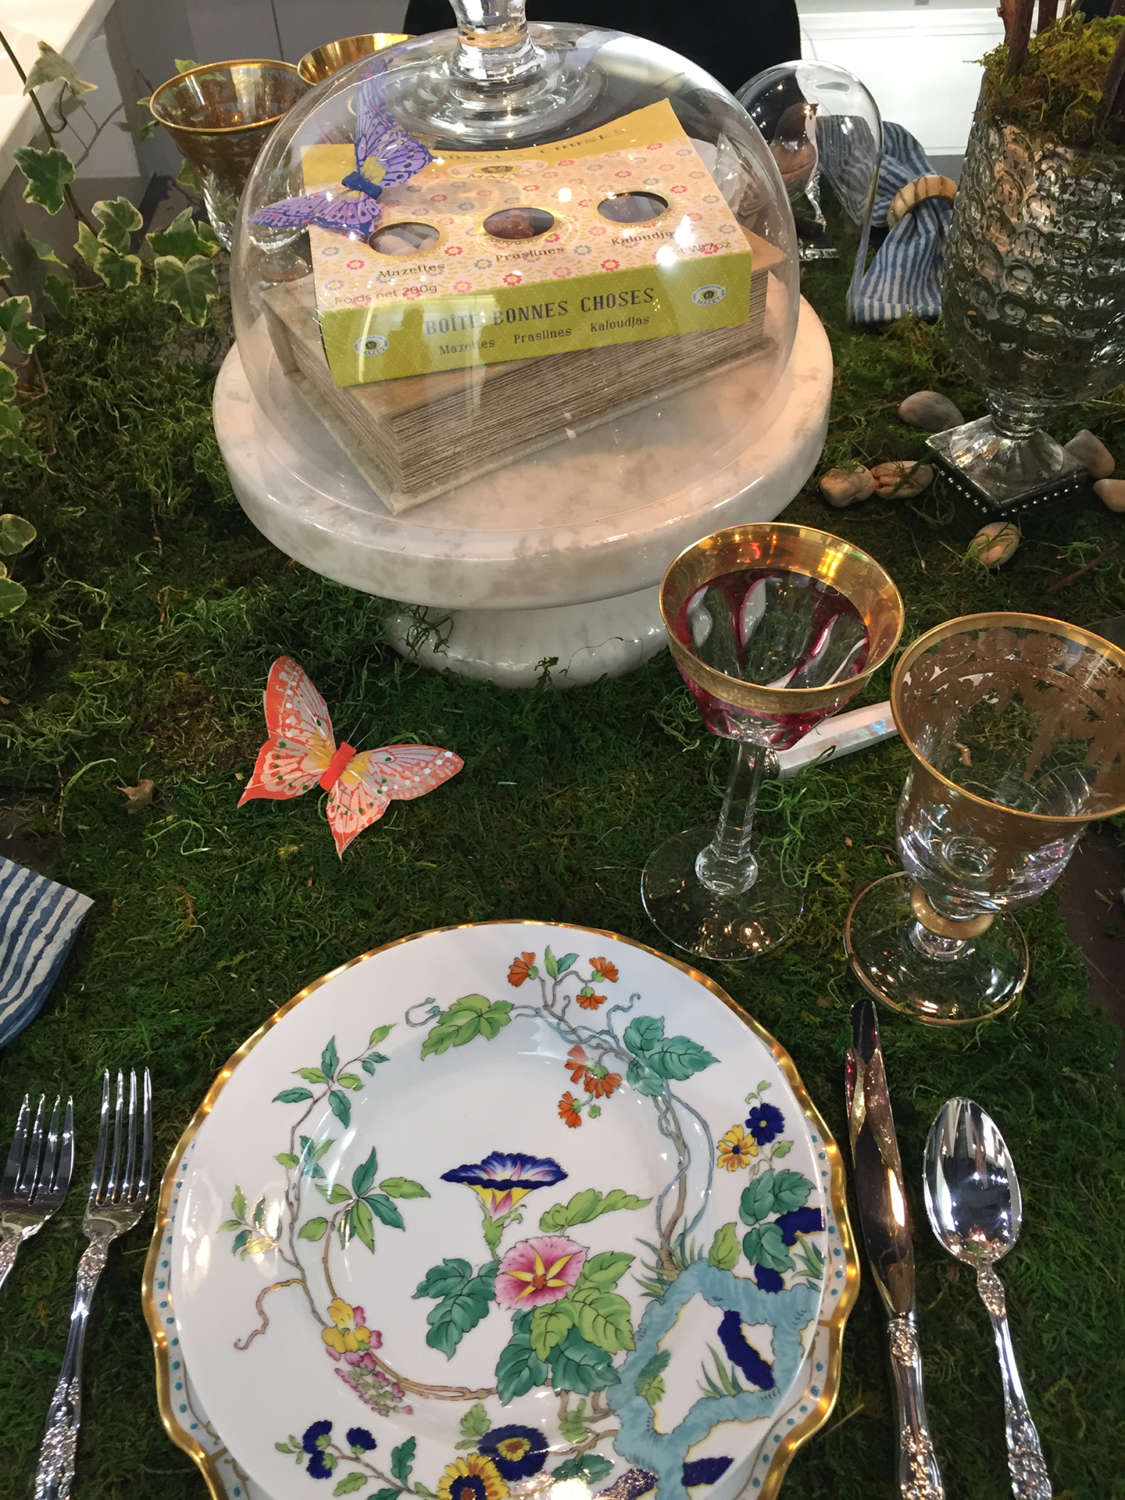 An Art of The Table tablescape set on moss with butterfly accents.